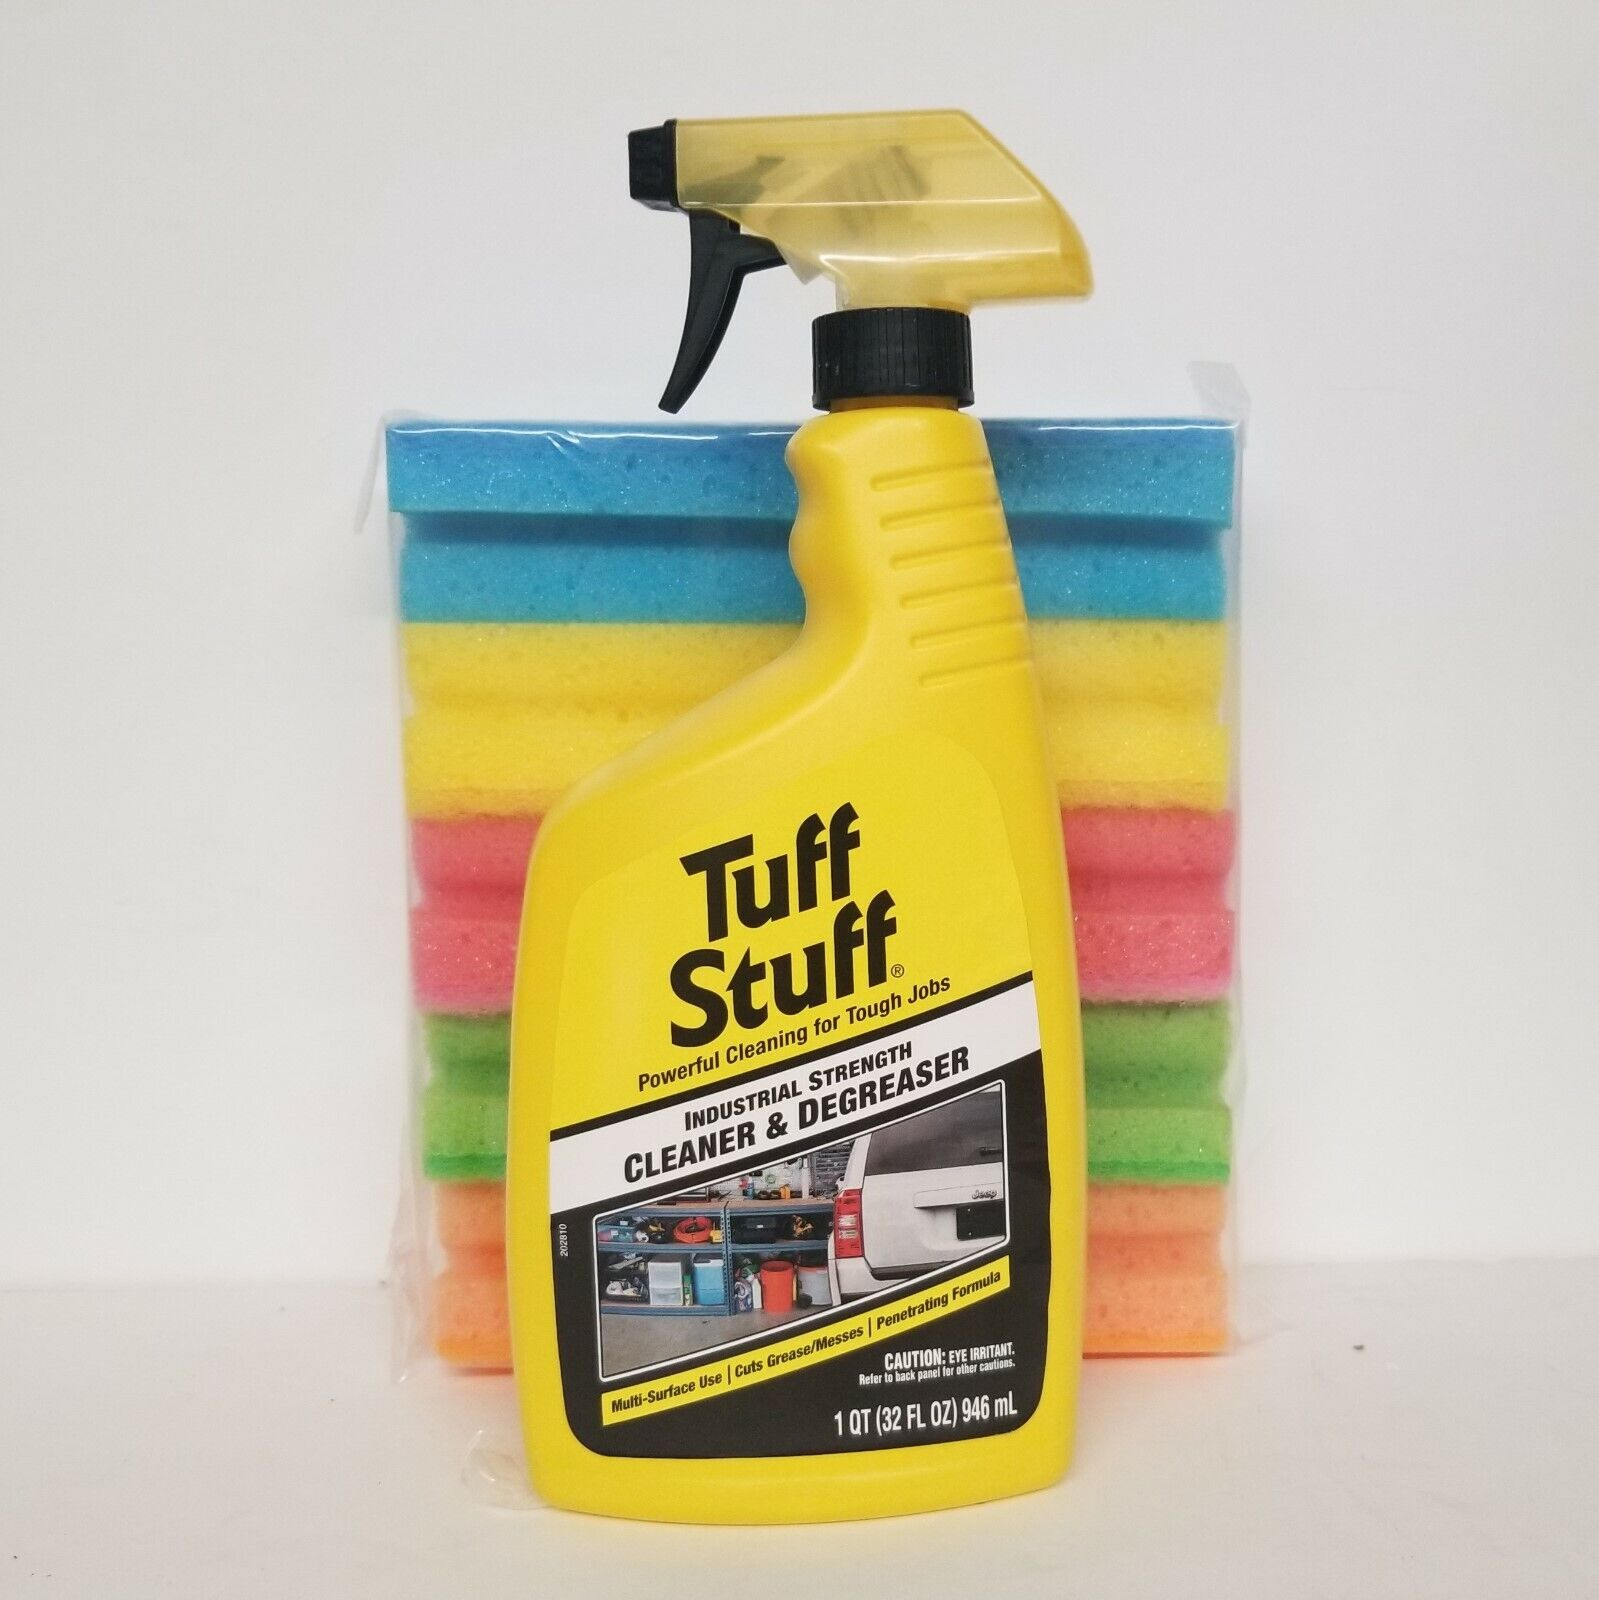 Tuff Stuff Industrial Strength cleaner & degreaser 32 oz + 10 Cleaning Pads